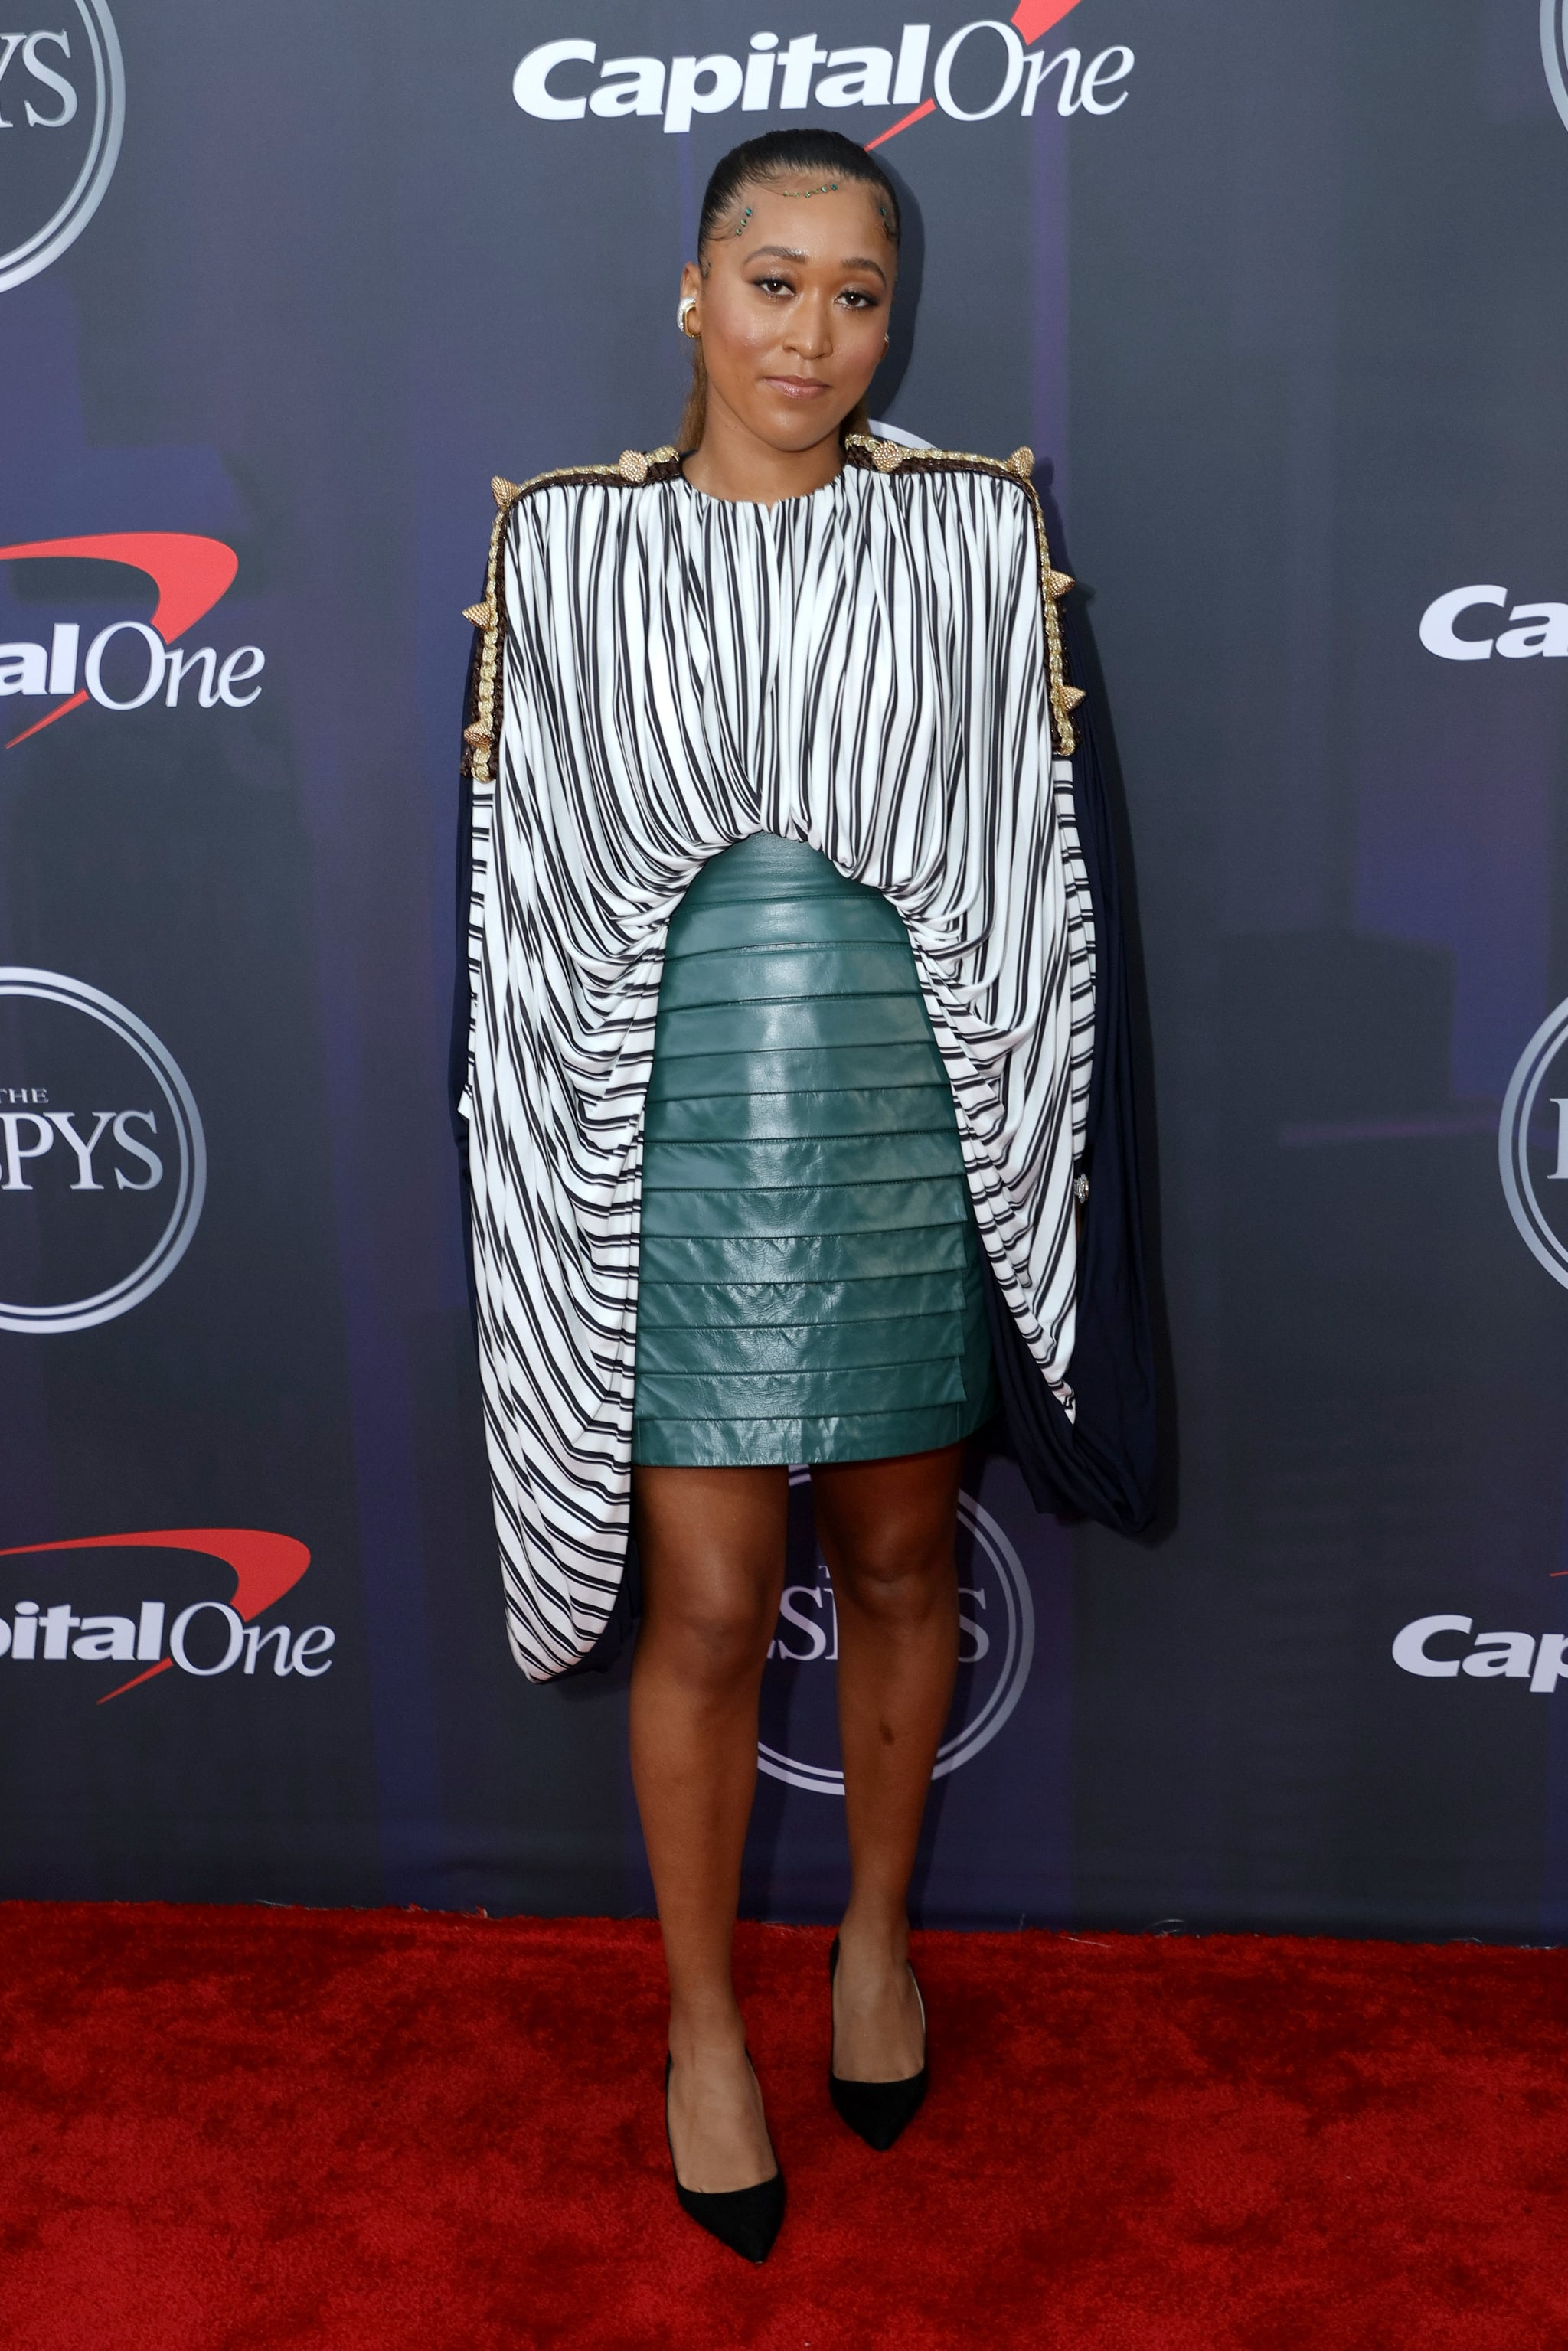 NEW YORK, NEW YORK - JULY 10: Naomi Osaka attends the 2021 ESPY Awards at Rooftop At Pier 17 on July 10, 2021 in New York City. (Photo by Michael Loccisano/Getty Images)